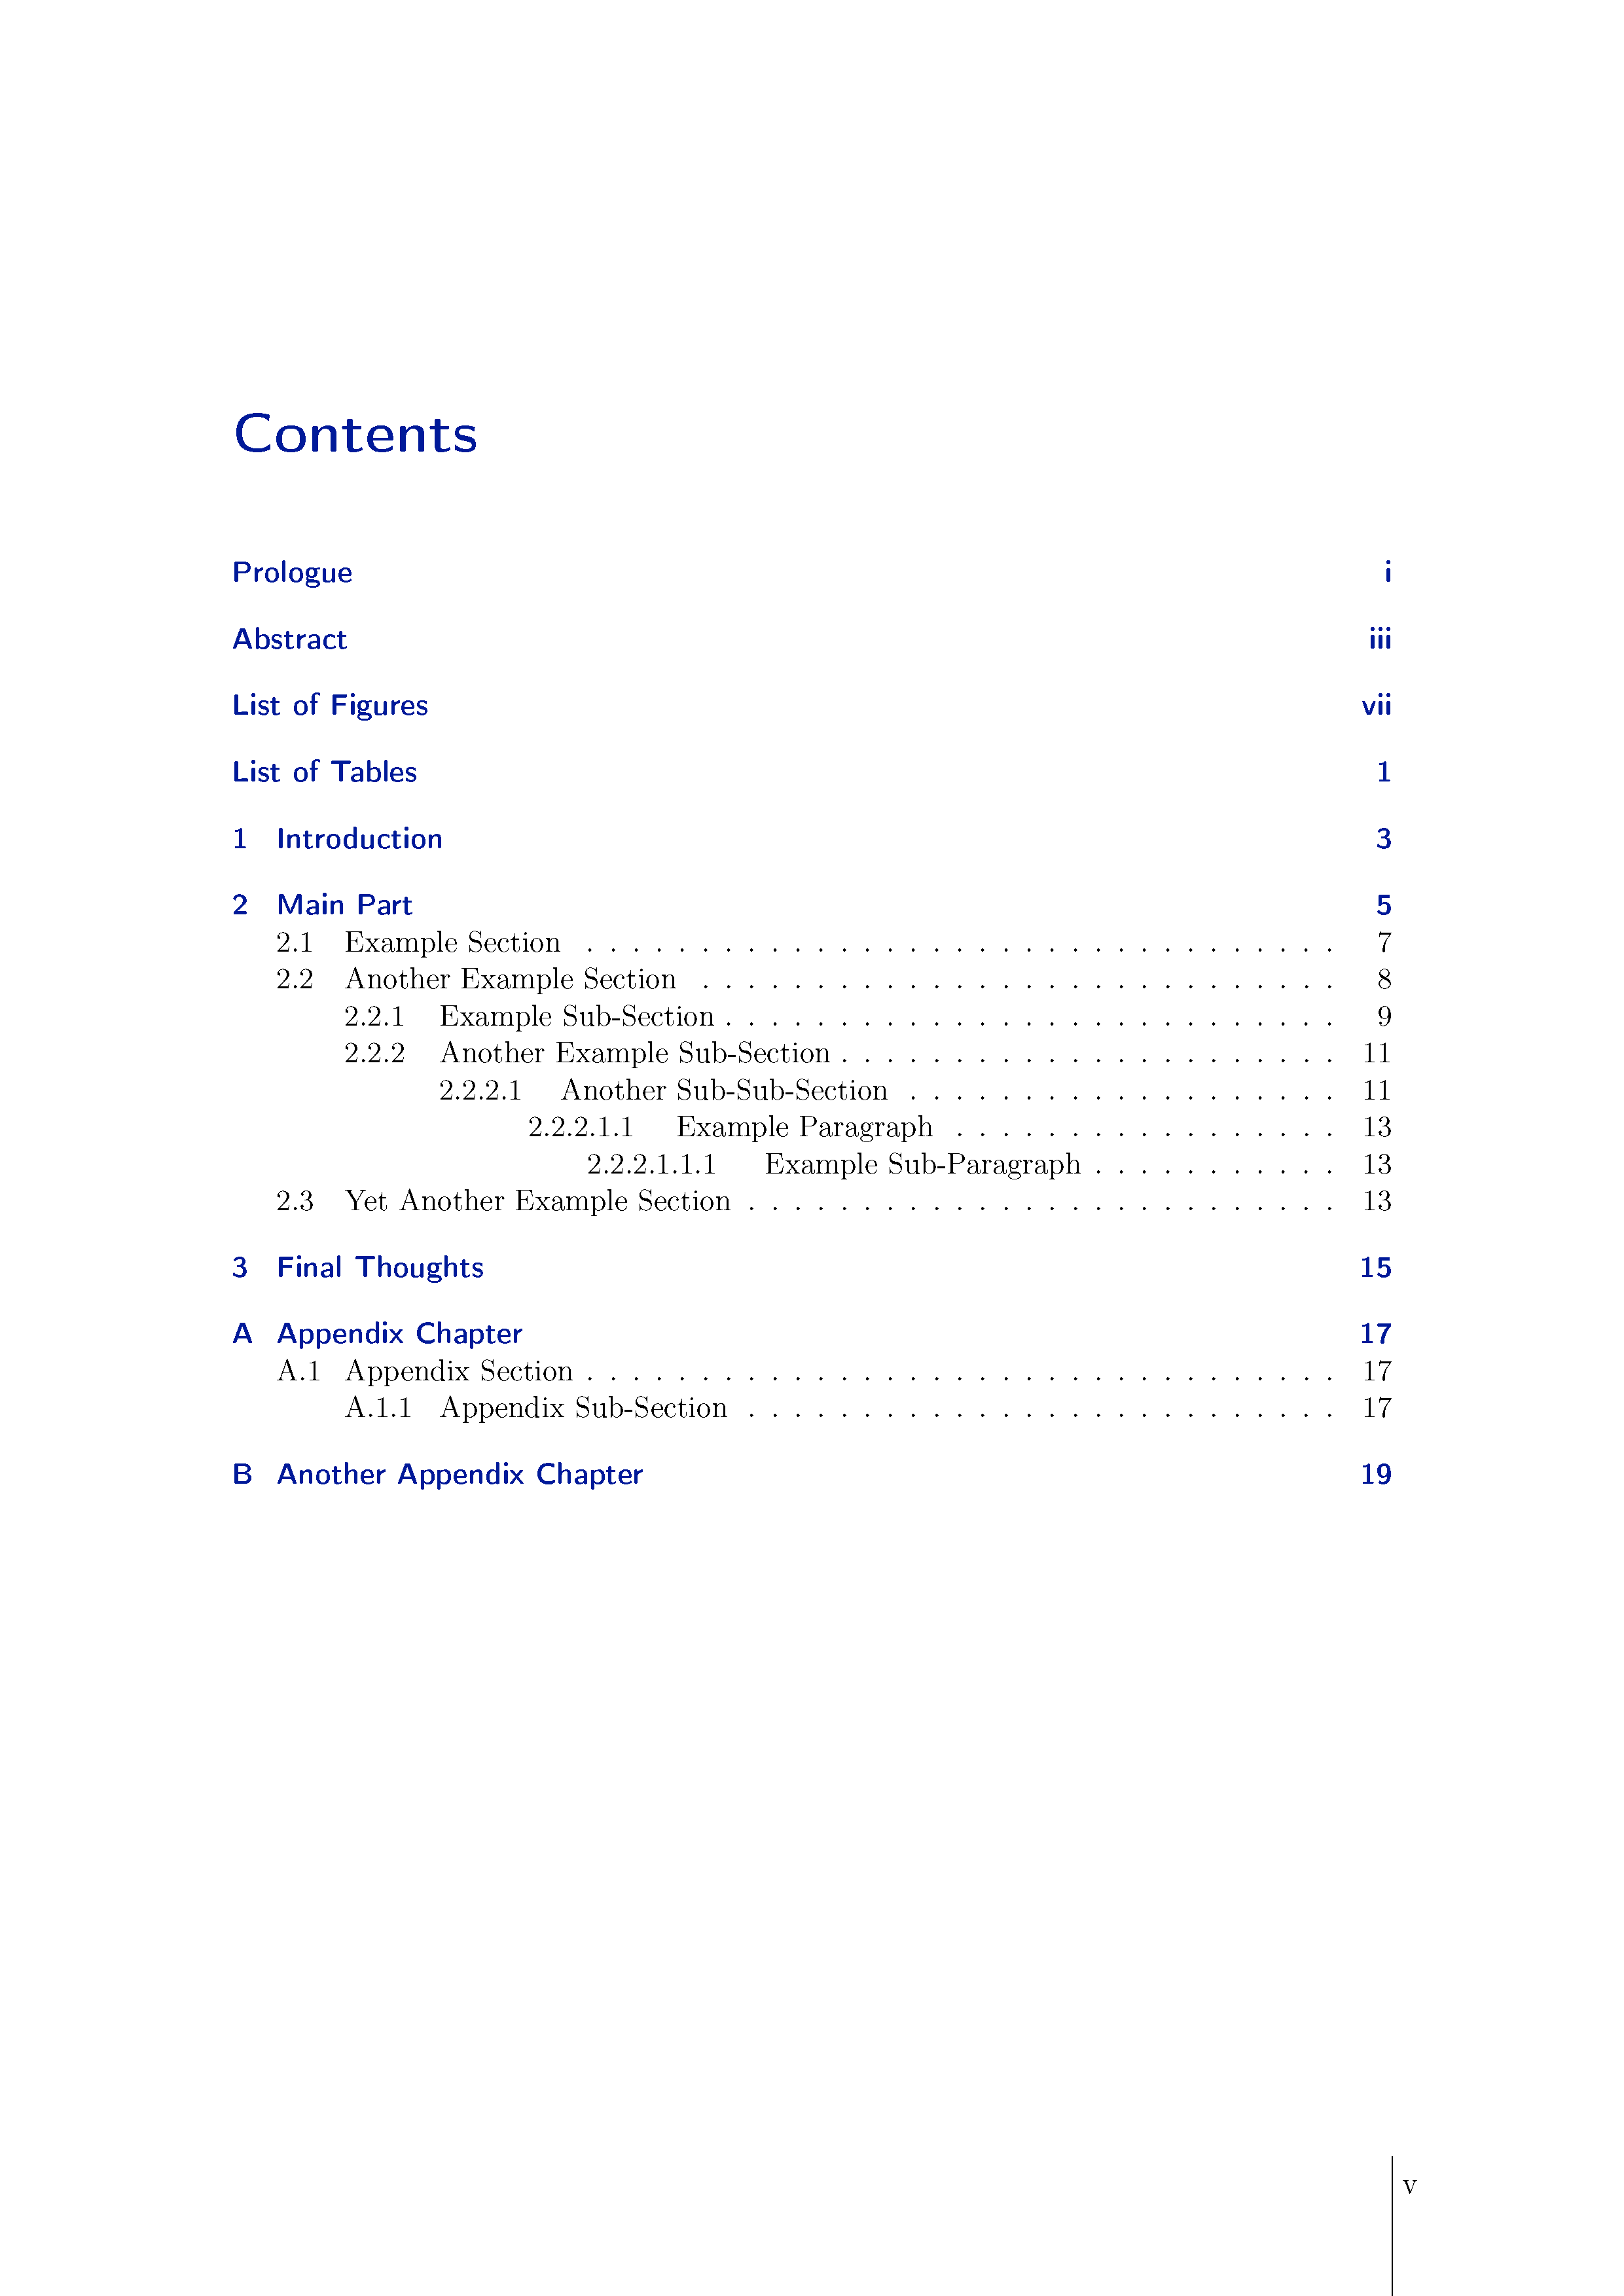 Thesis ShareLaTeX, Online LaTeX Editor